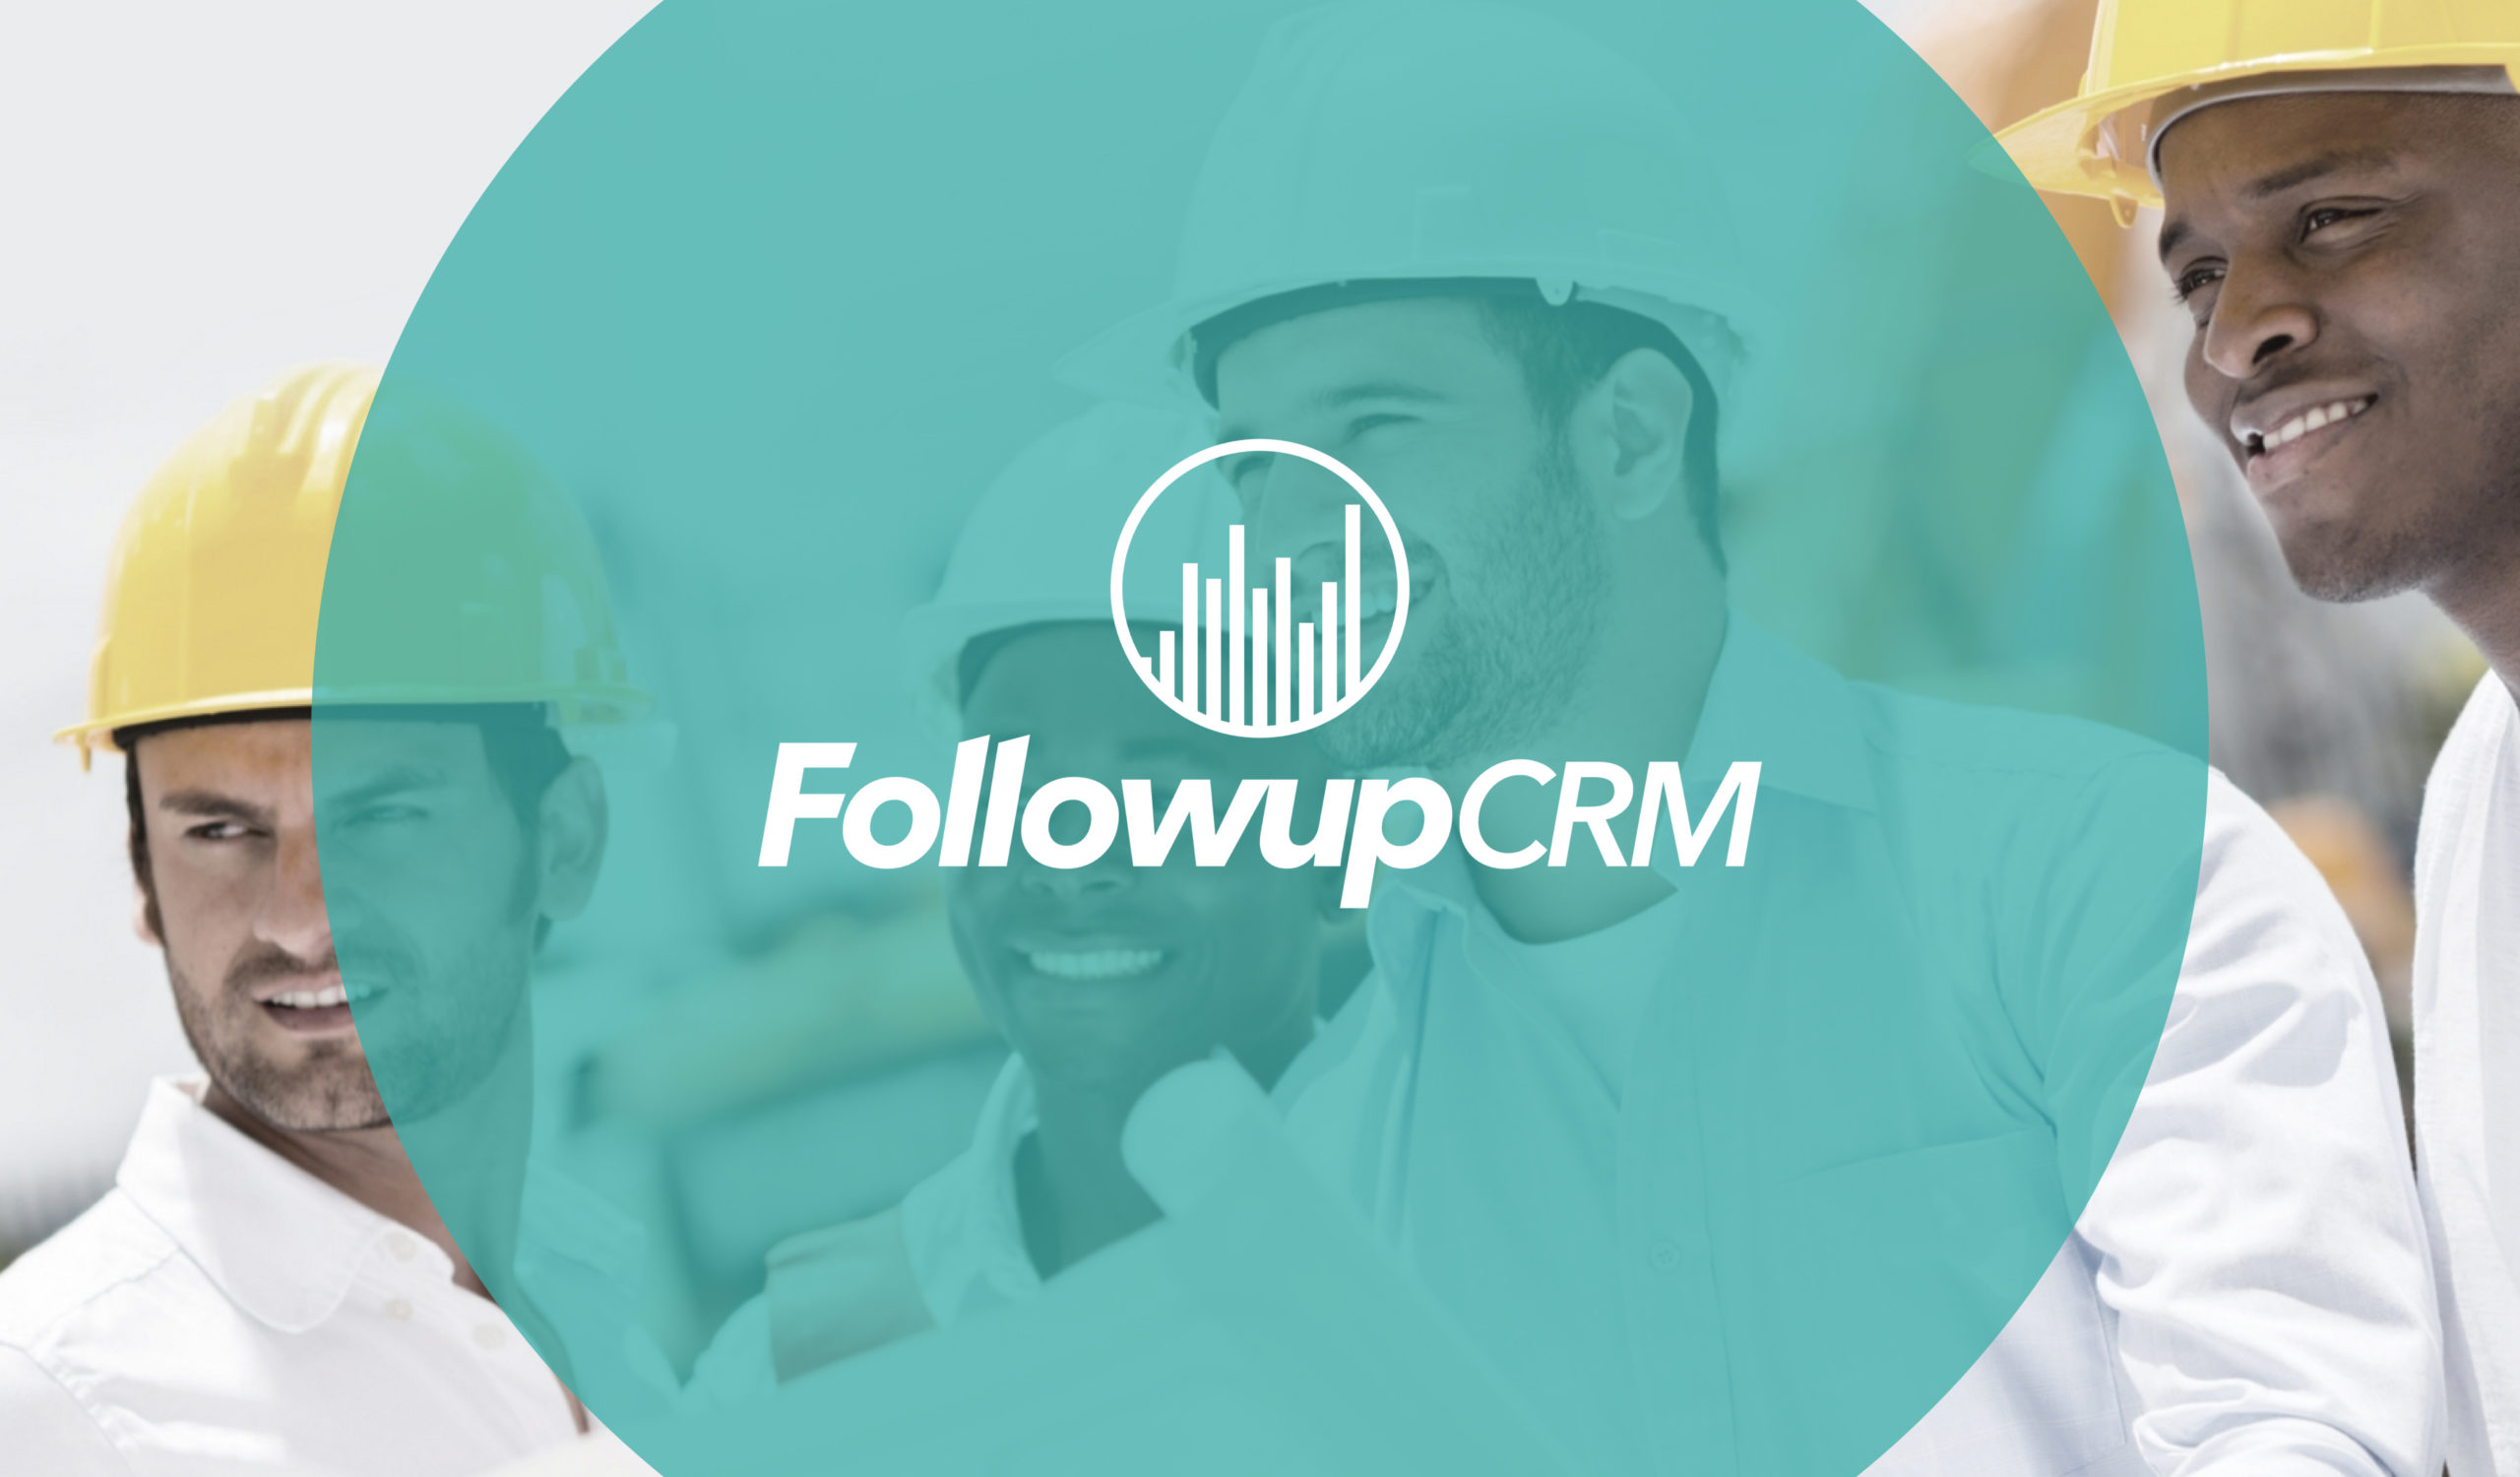 Followup CRM